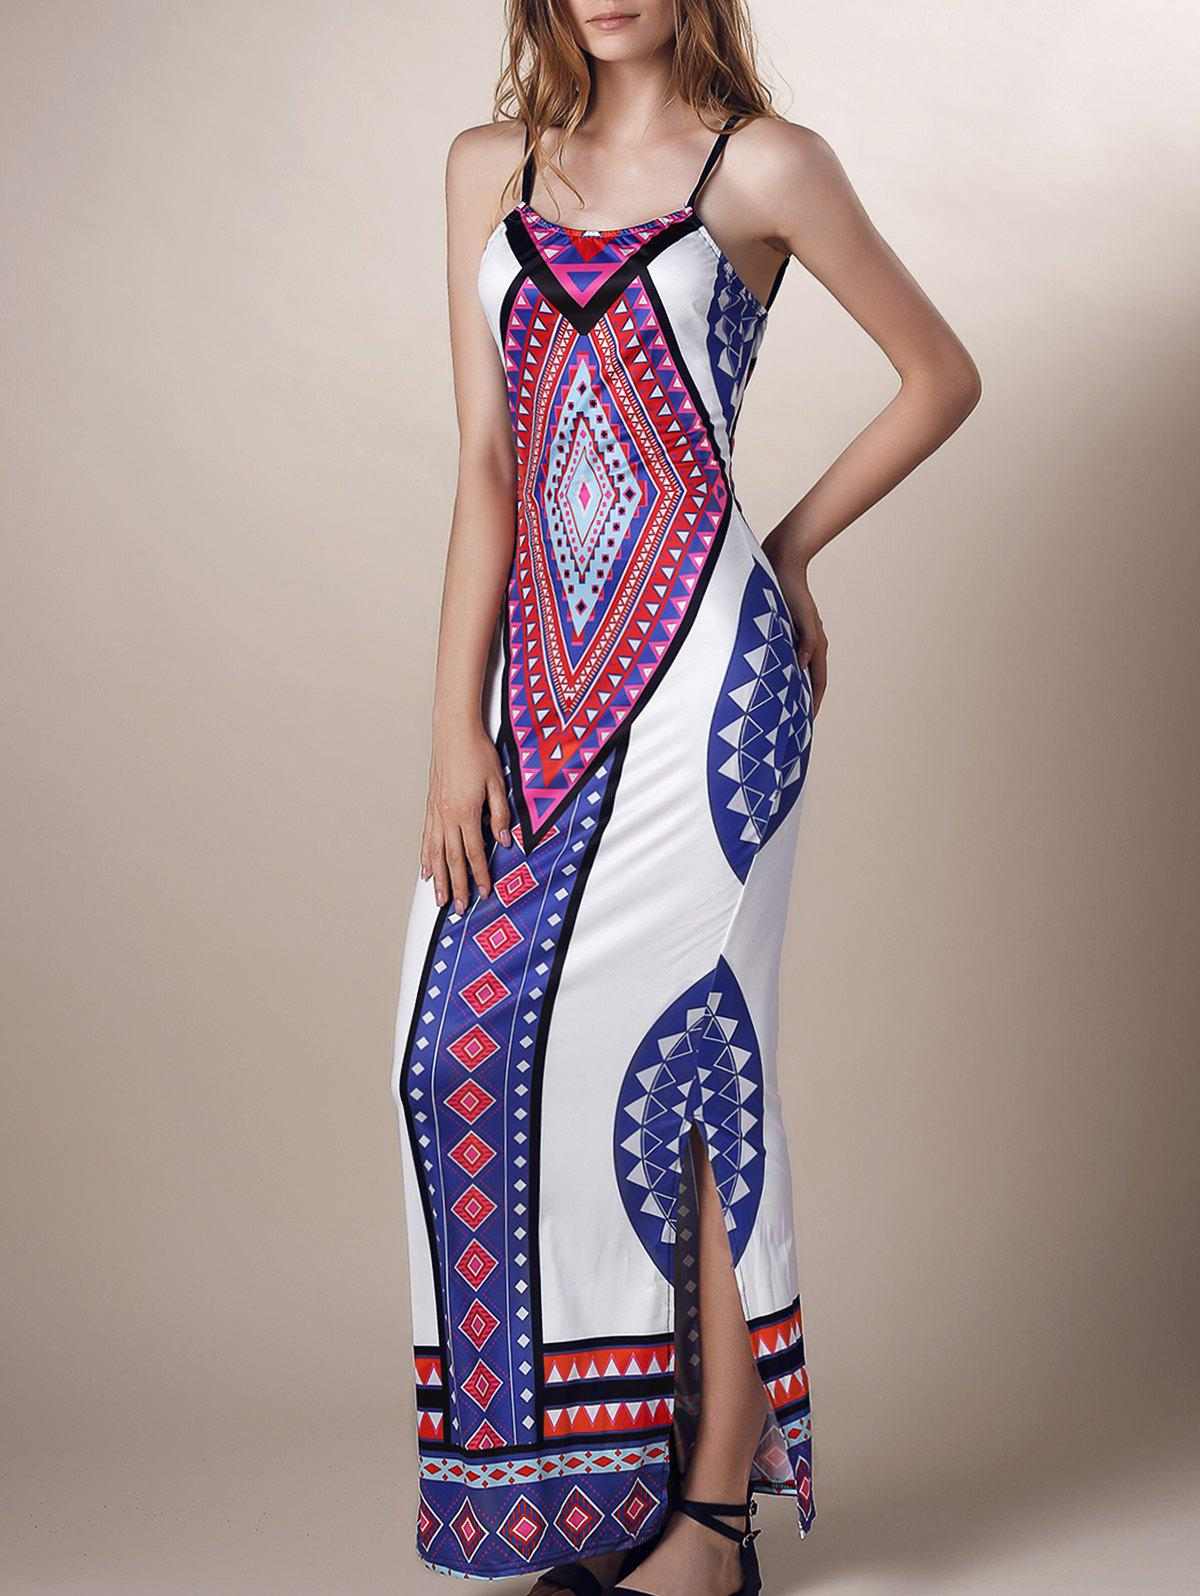 Geometric Print Backless Side Slit Dress от Dresslily.com INT